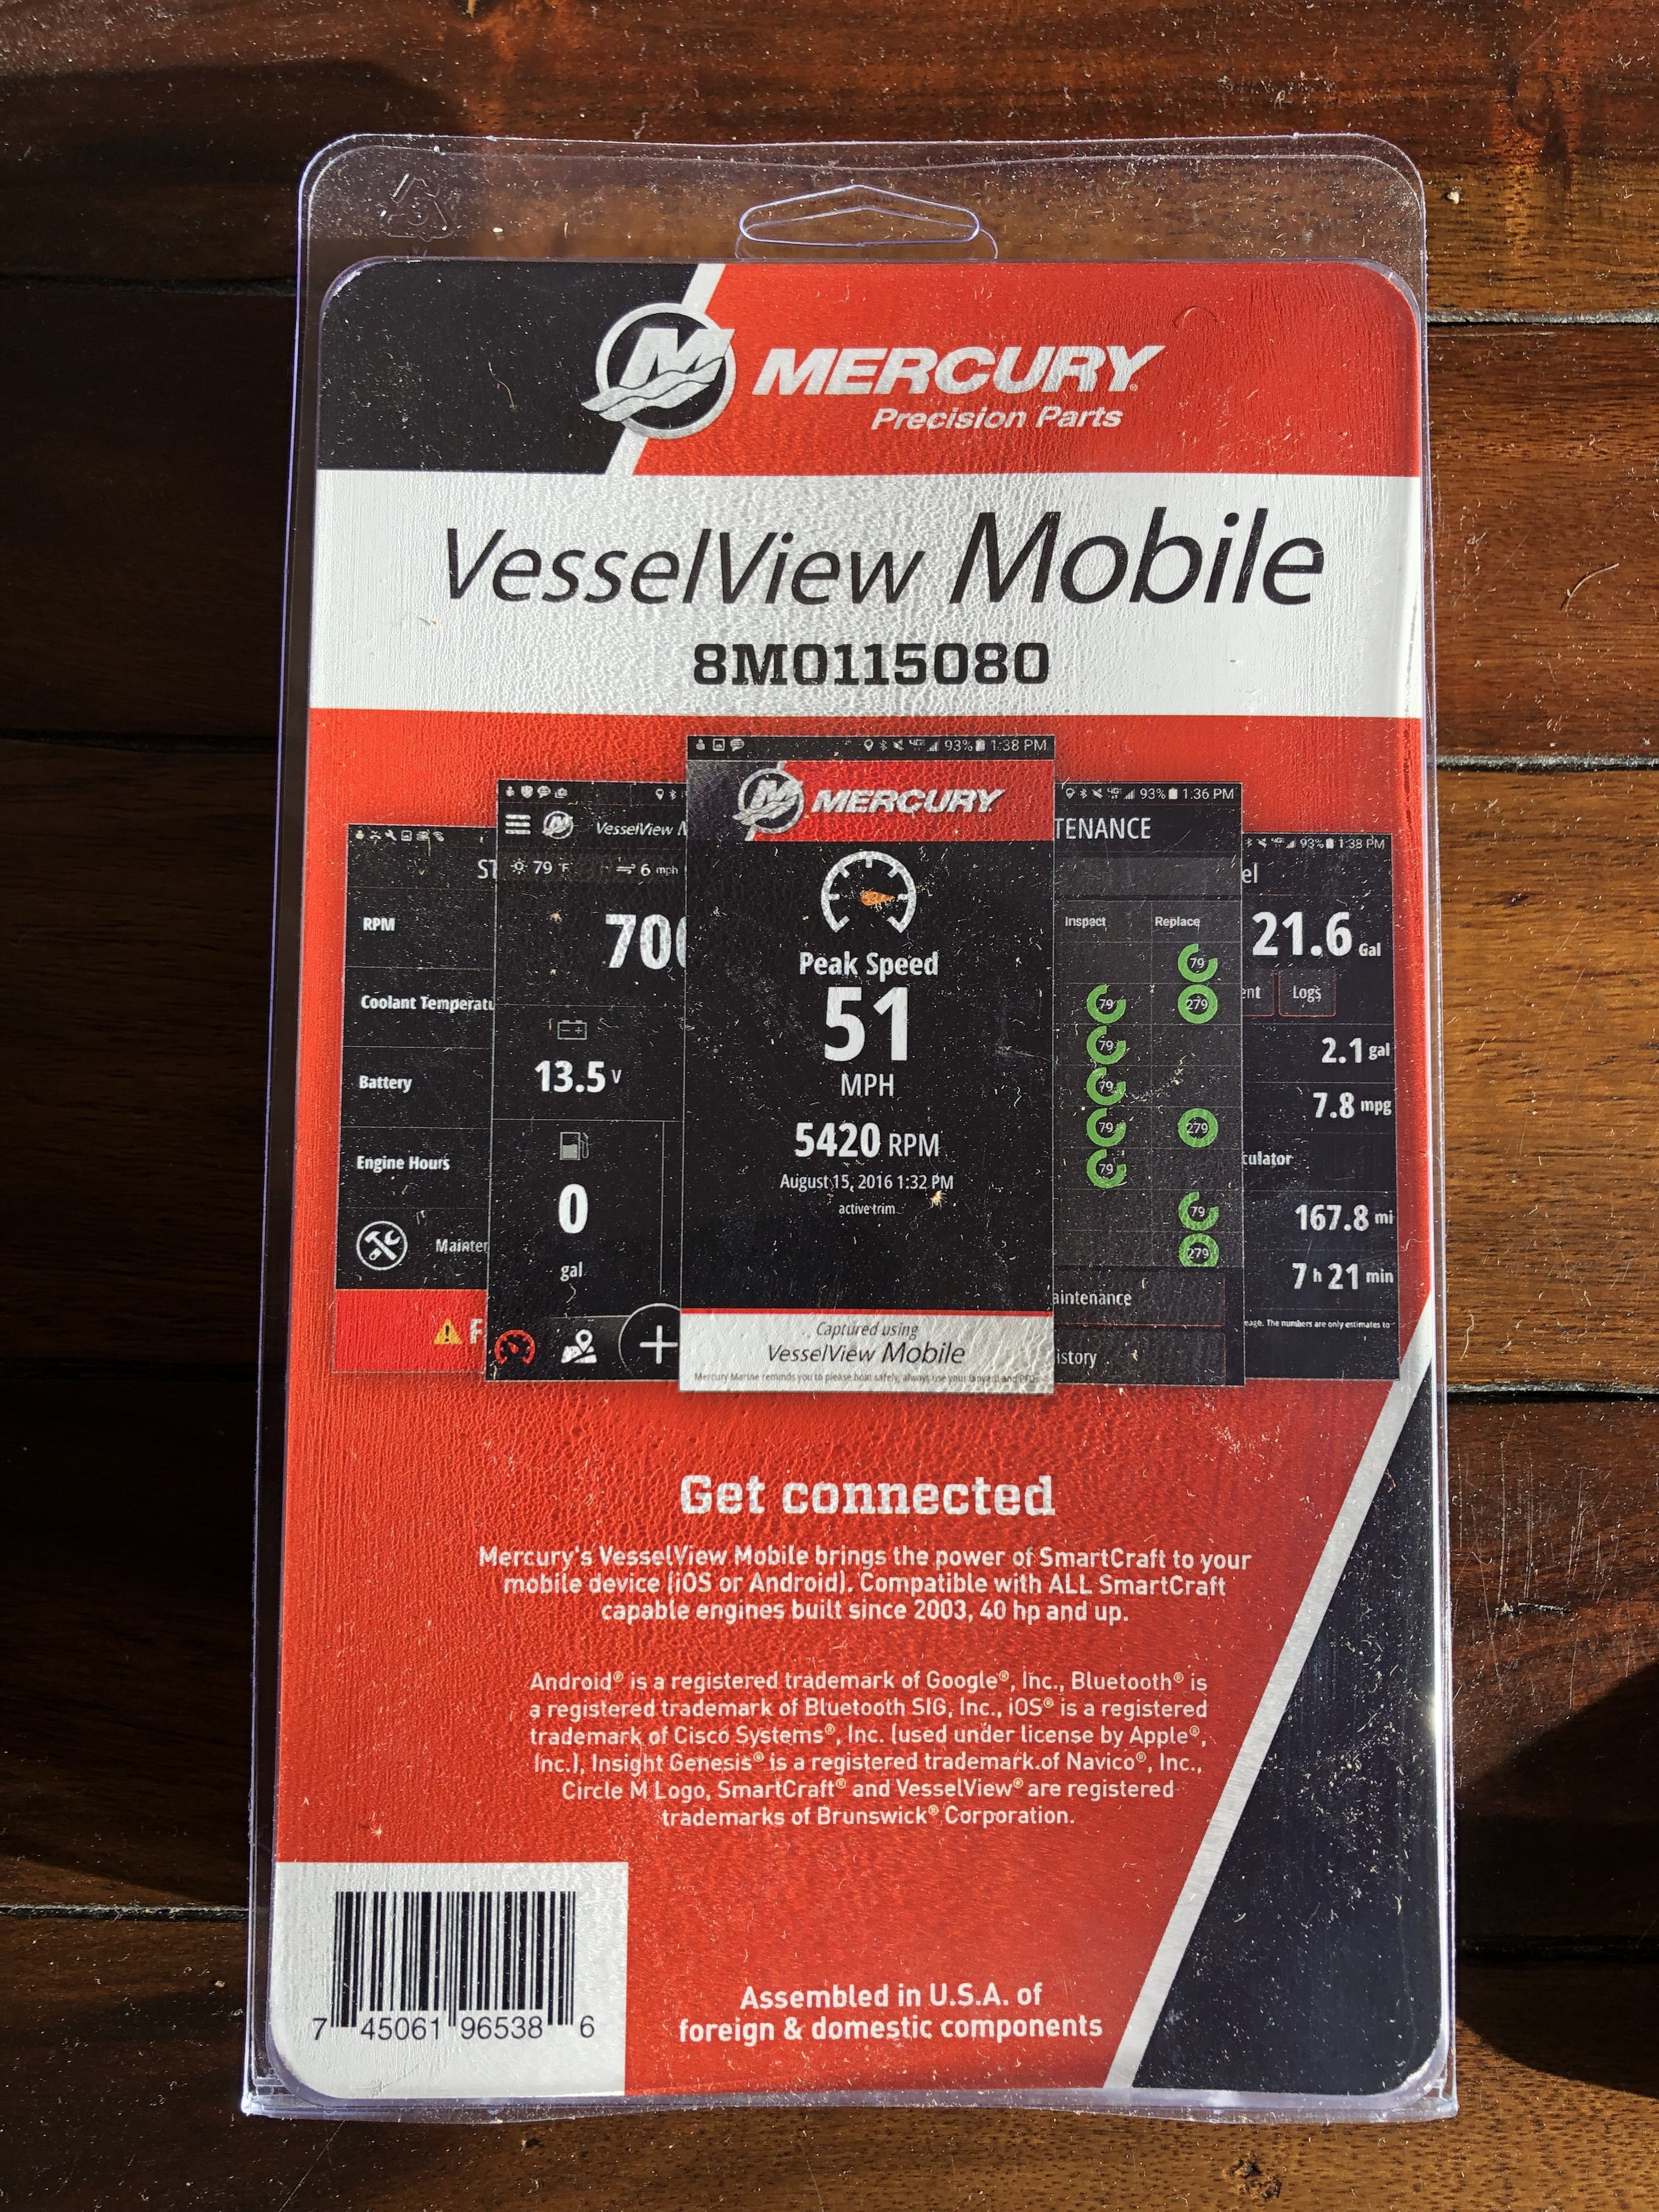 Vesselview mobile showed up!